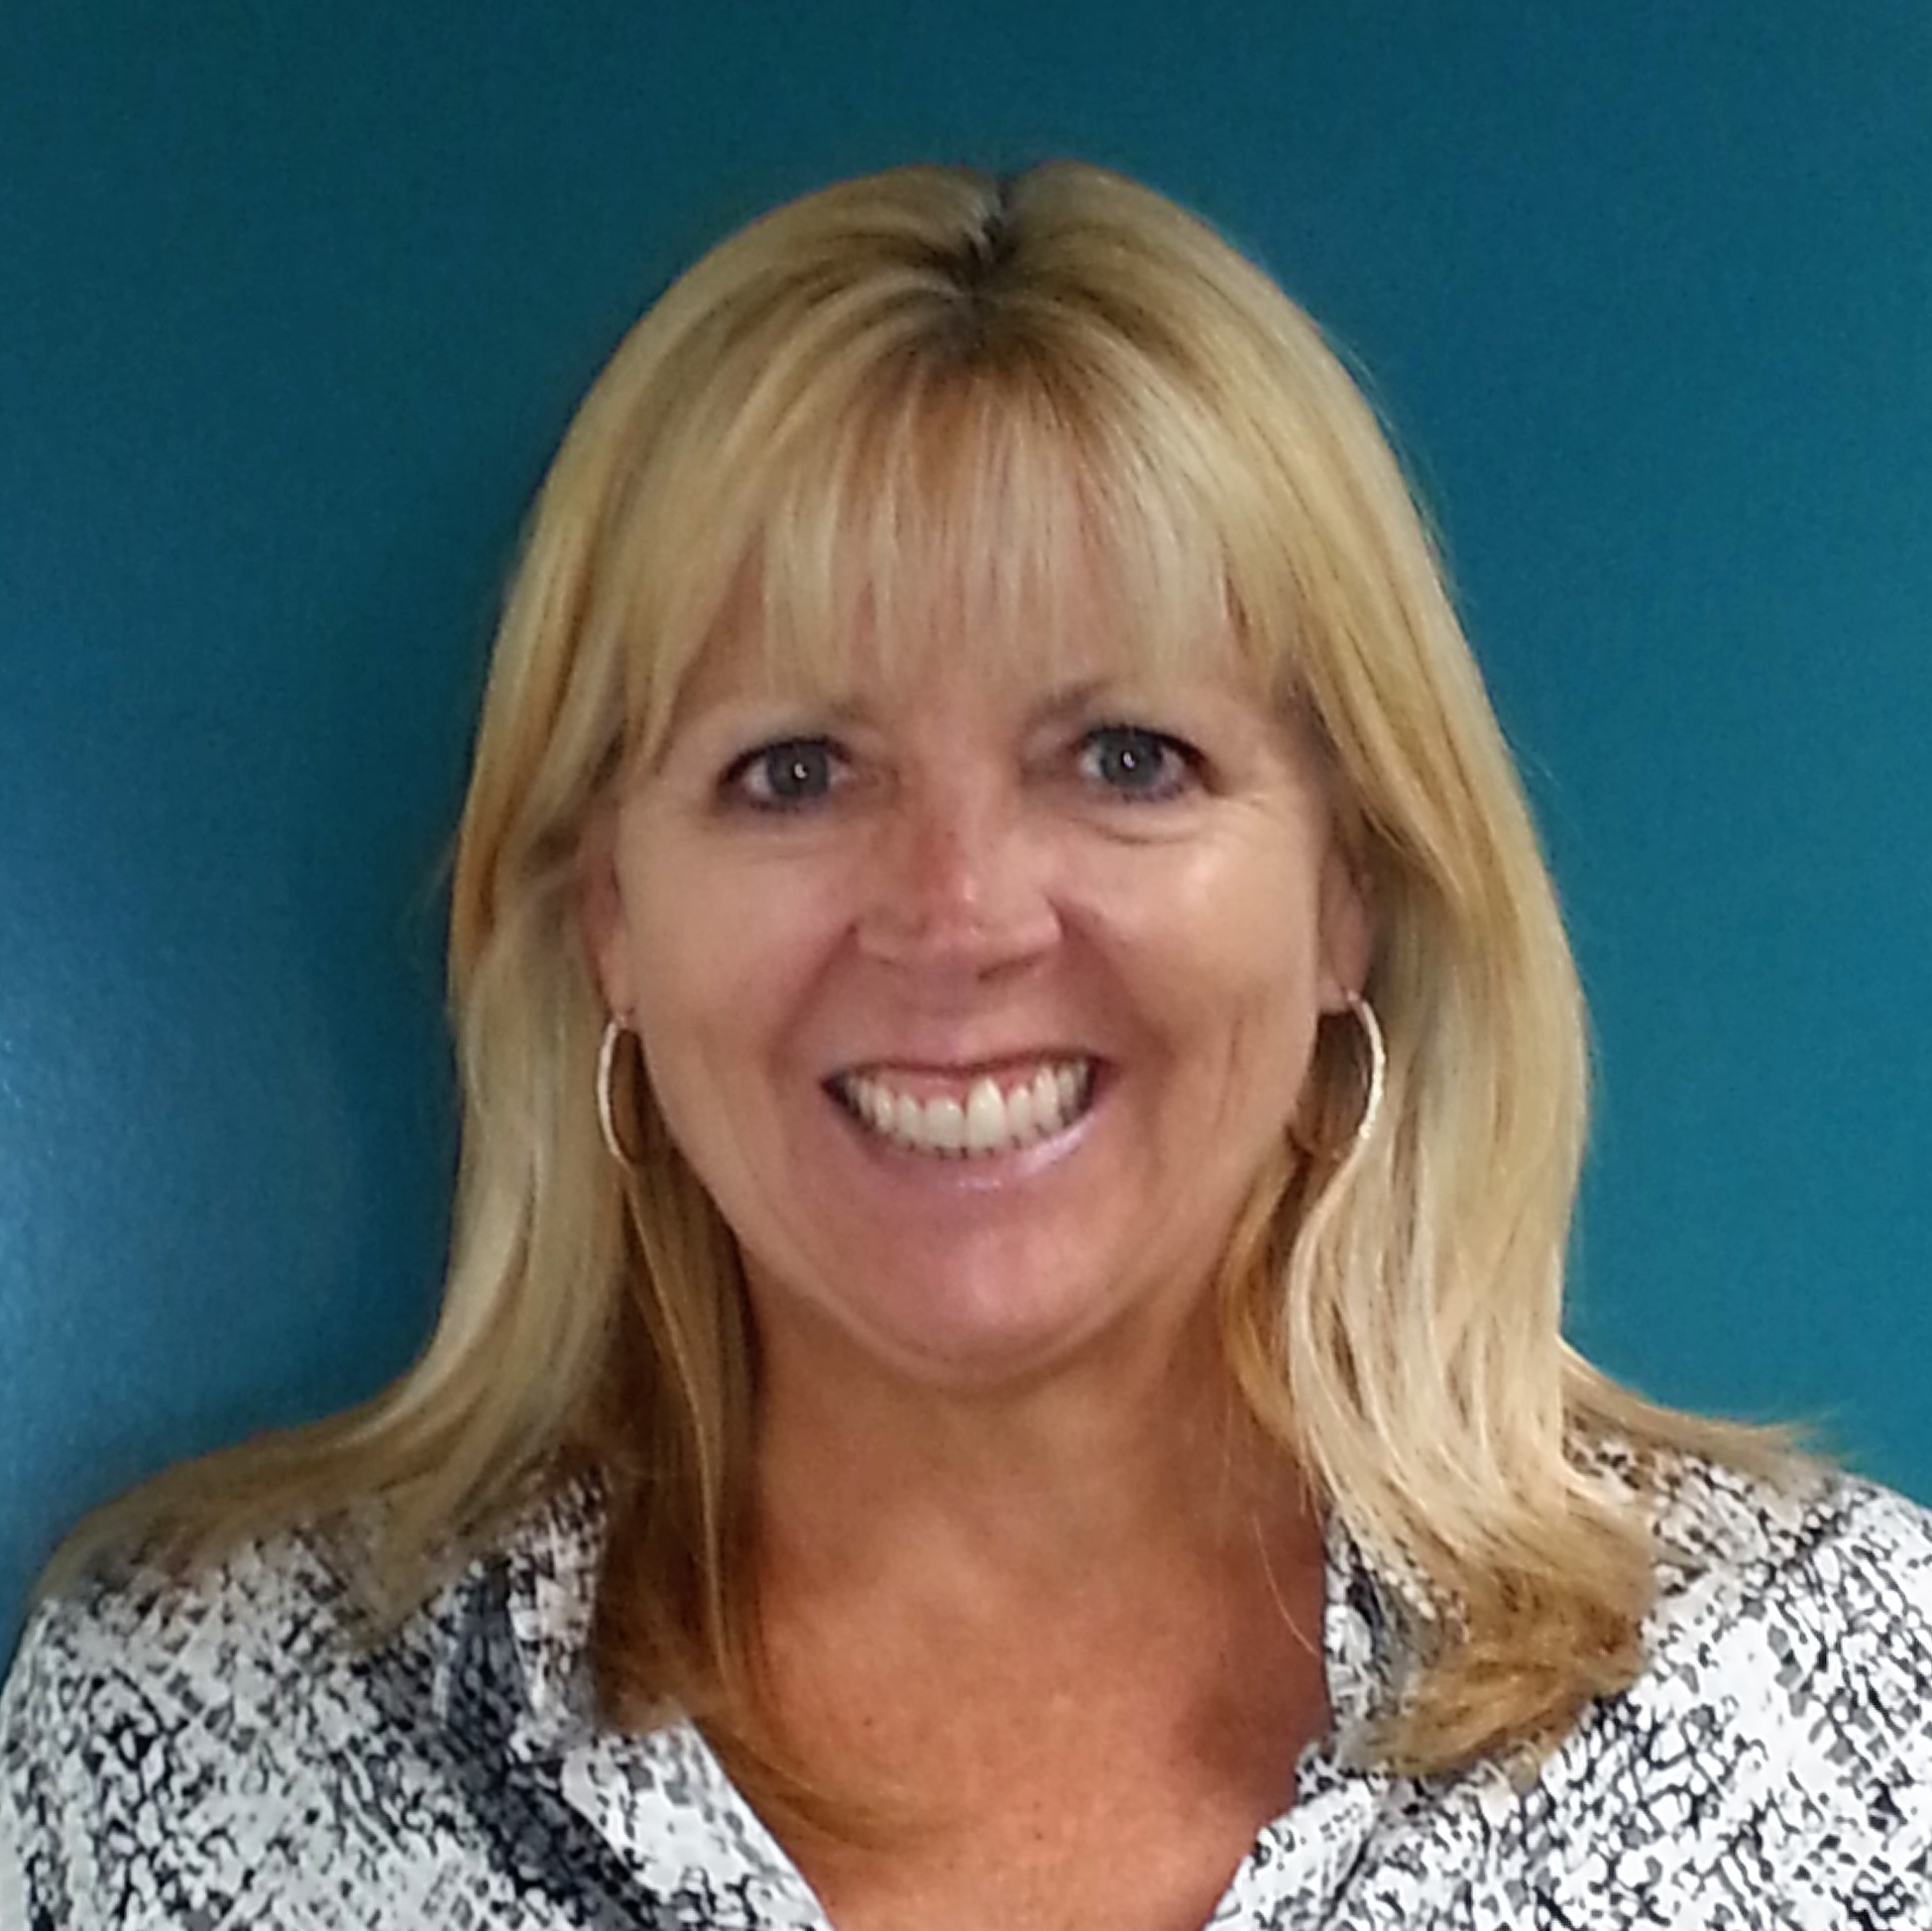 Lisa Mann is the Director of Operations at Chosen Payments